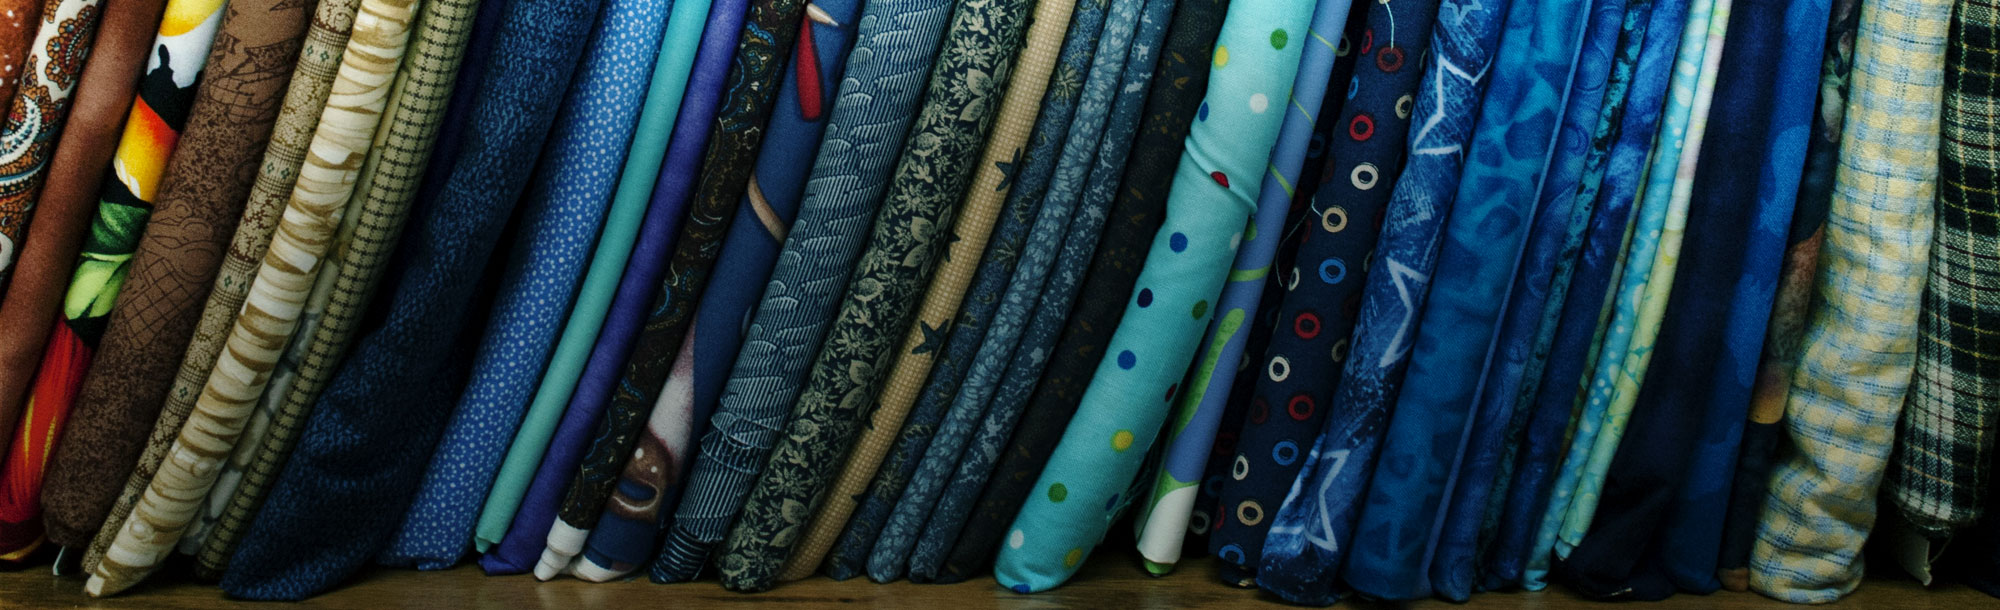 Discount Upholstery Fabric Wholesale Fabric Suppliers